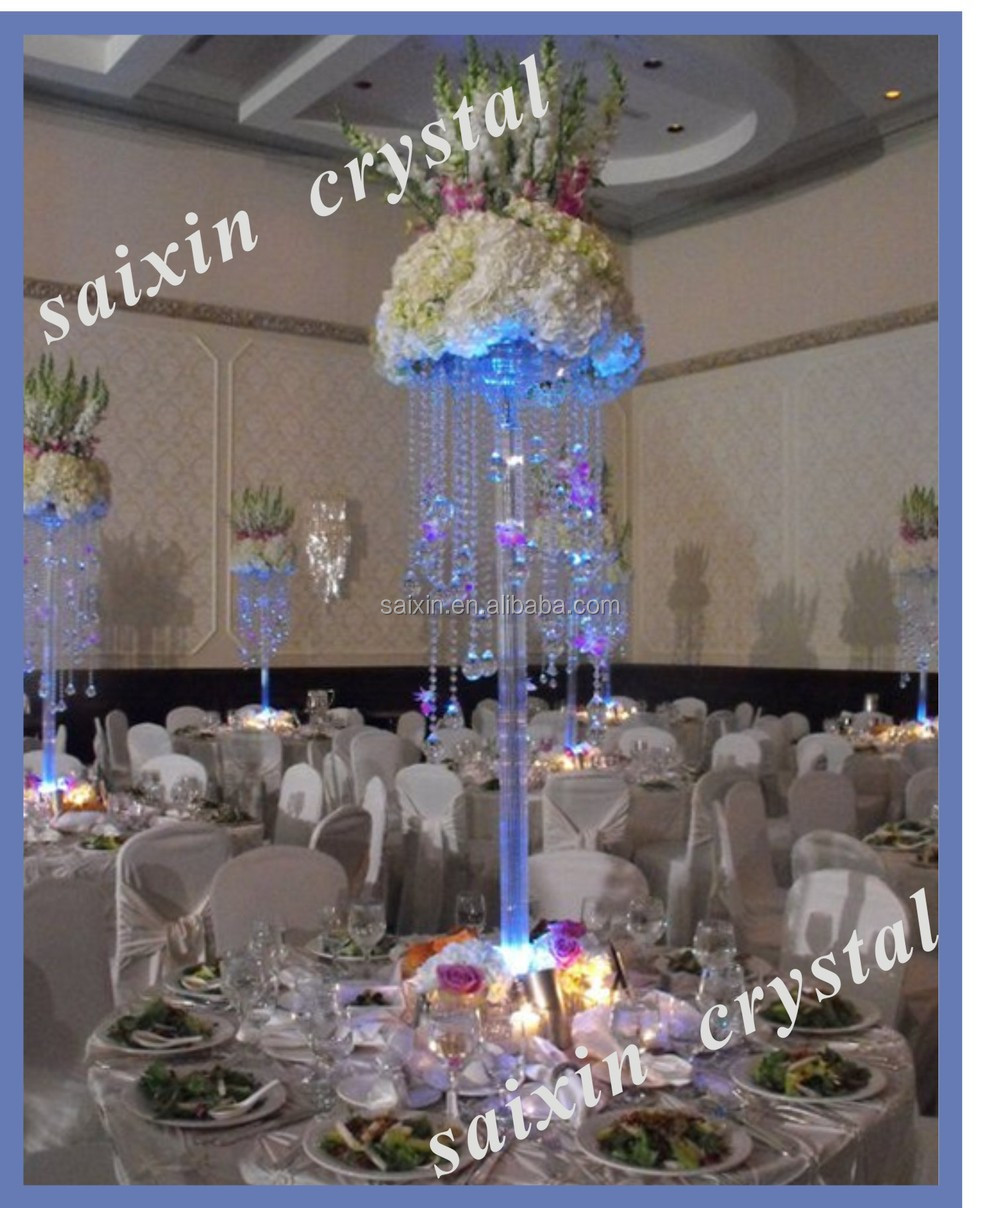 New! Elegant Crystal Flower Stand Wedding Crystal Table Centerpieces ZT 209